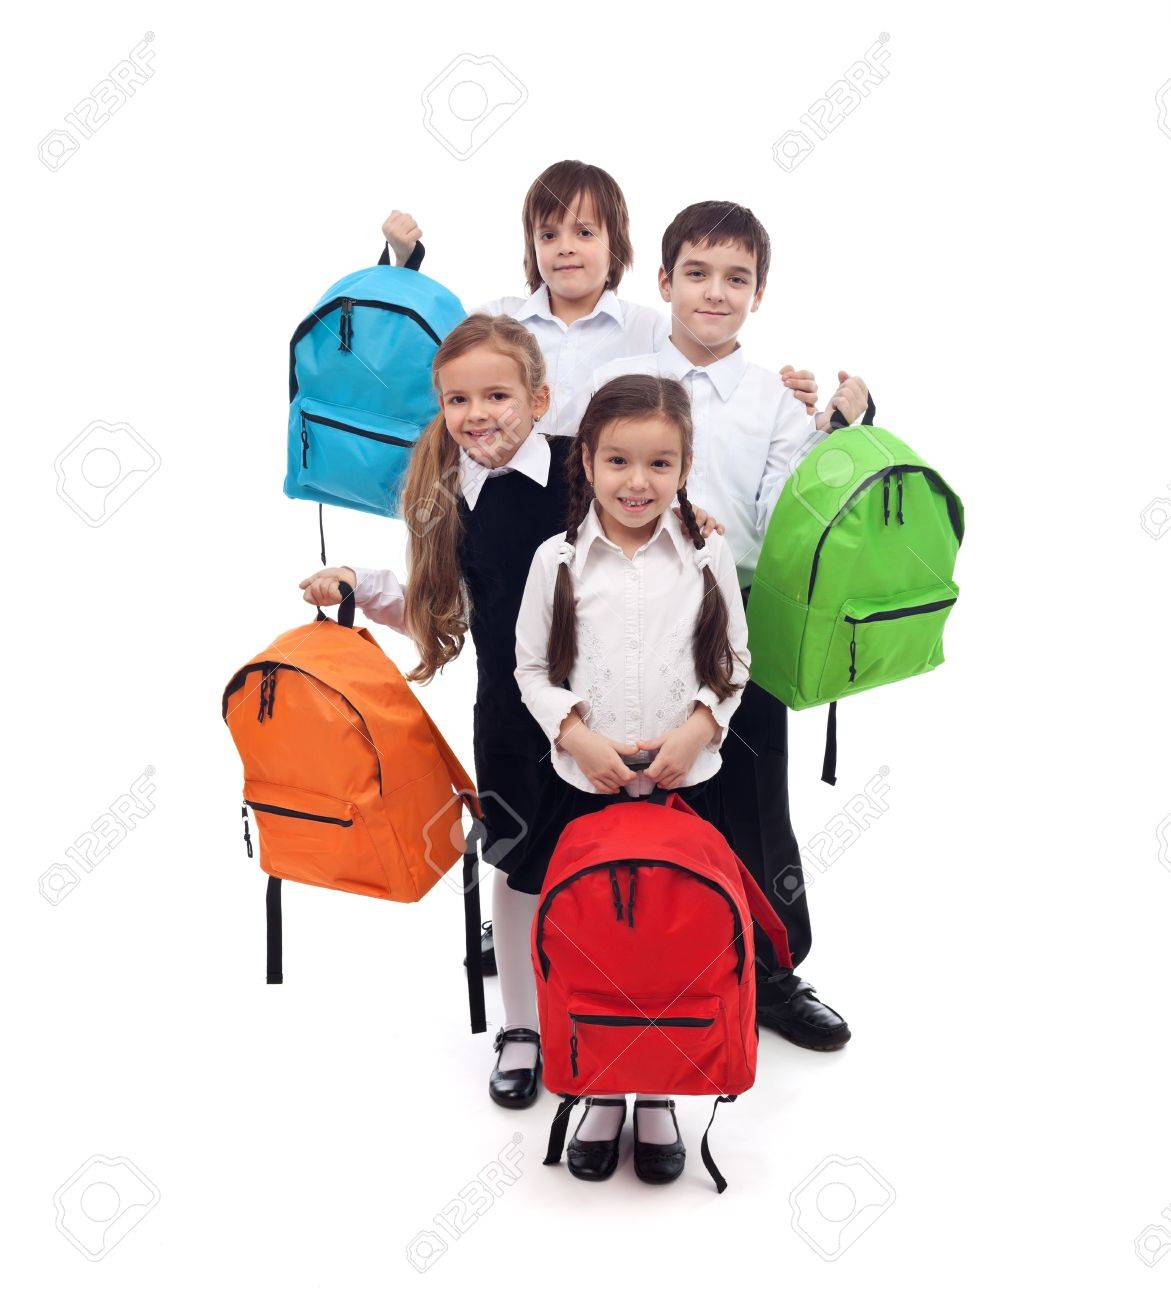 Group of happy kids with colorful school bags - back to school concept - 21140131